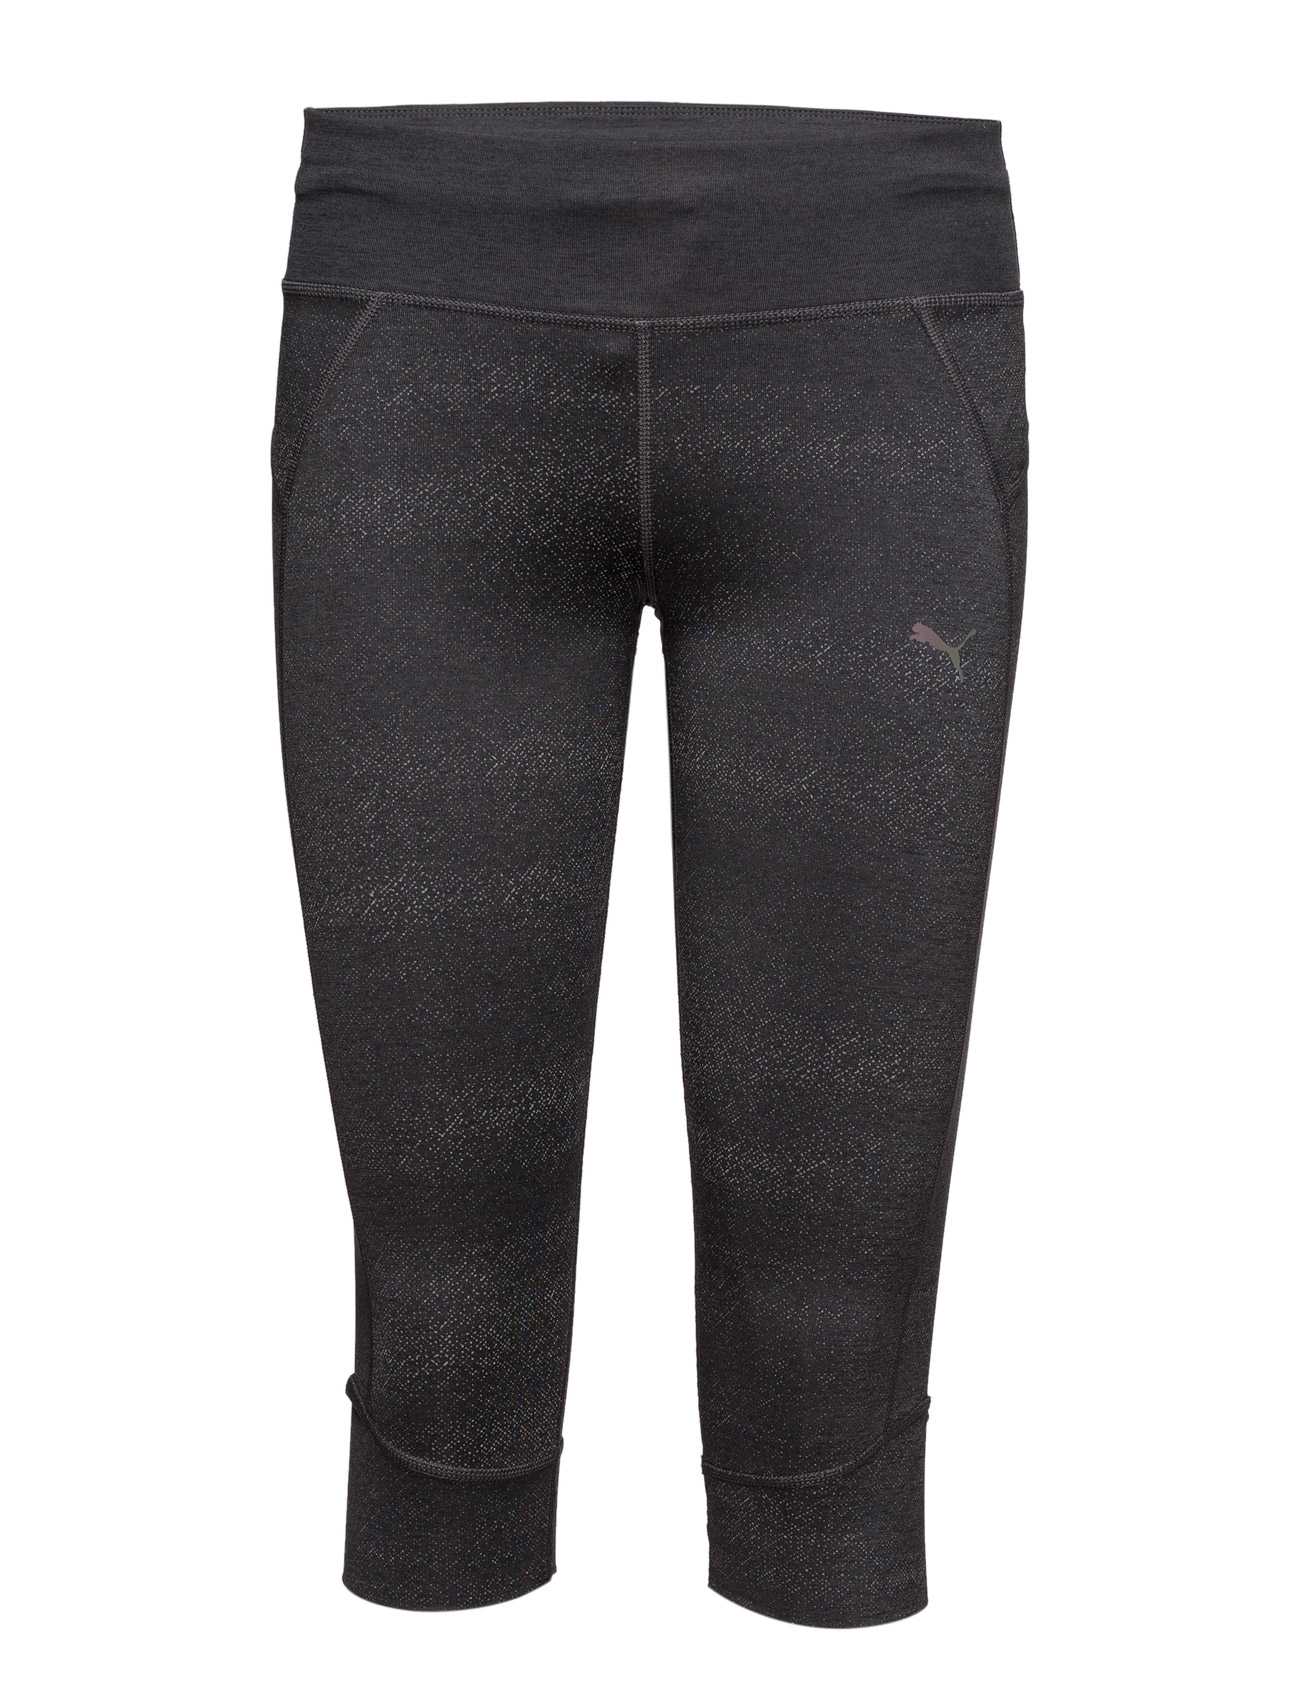 Nightcat 3/4 Tight W PUMA SPORT Trænings leggings til Damer i